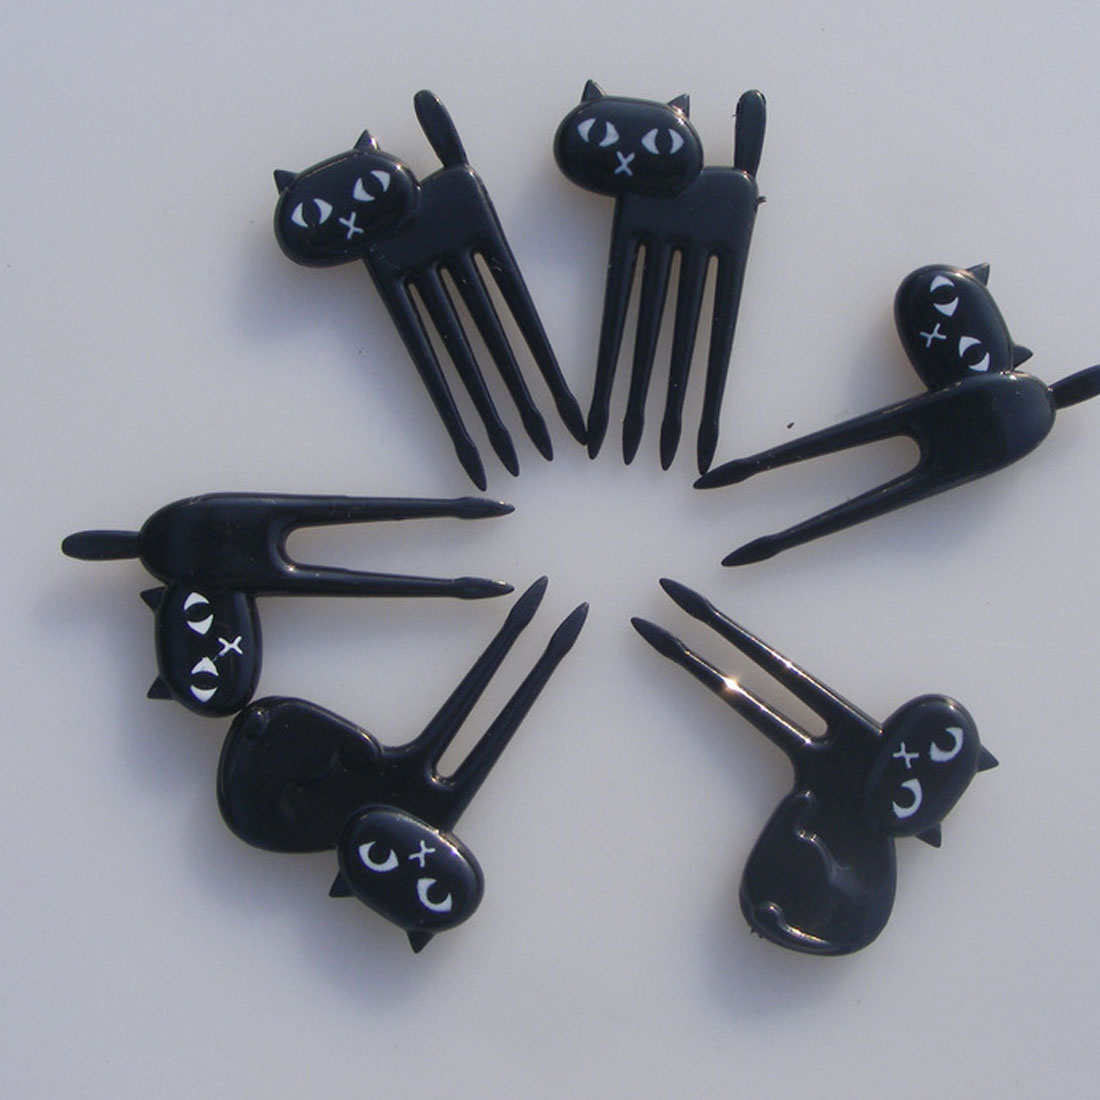 New 6 PCs Little Black Cat Fruit Forks Cute Cartoon Fork for Kitten Easy Decoration Sign Happy Gifts of Eco-Friendly dropship